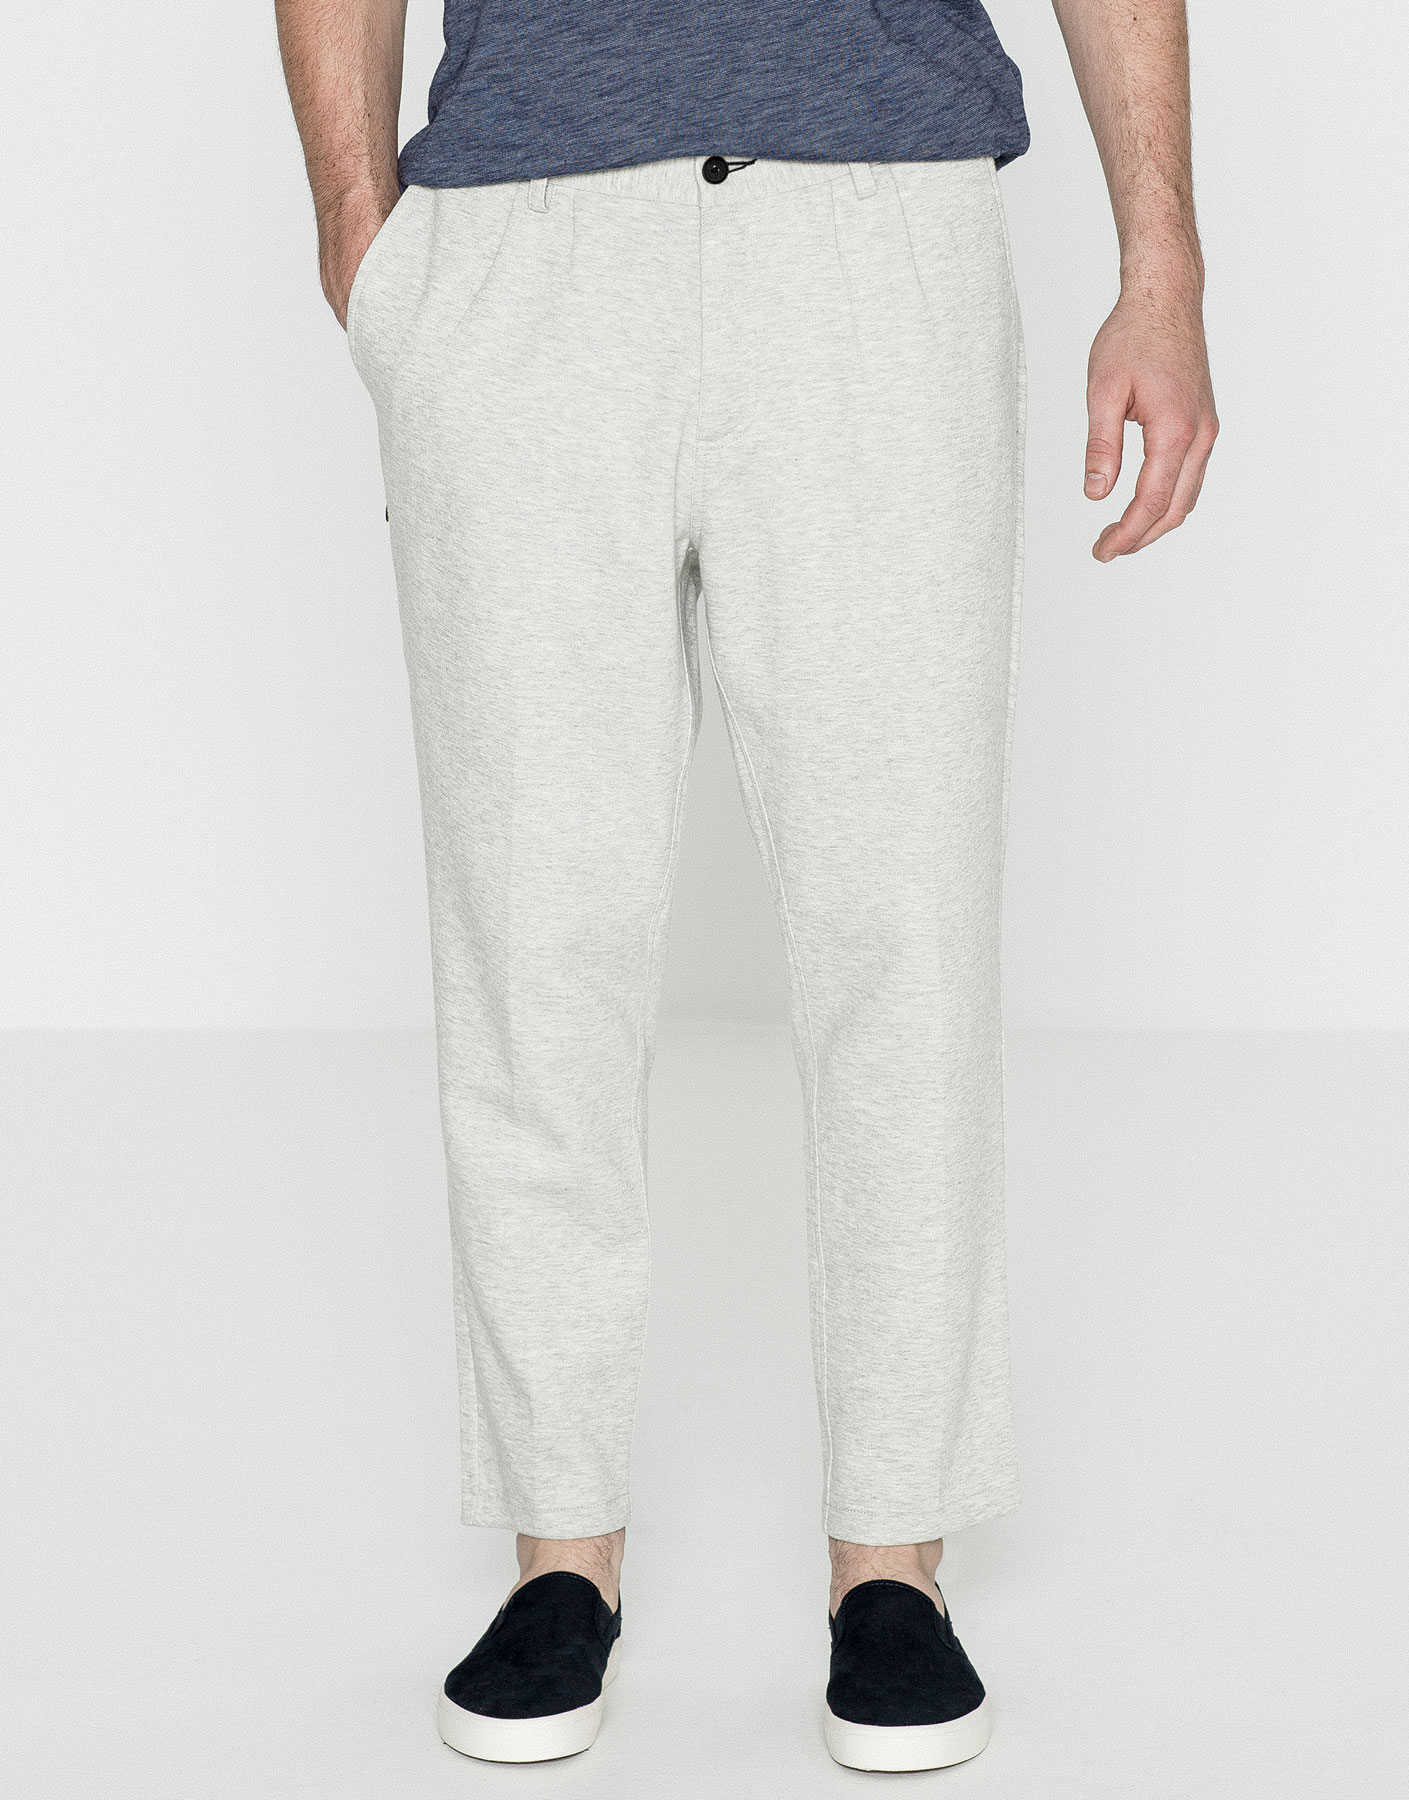 Chino style jogging trousers